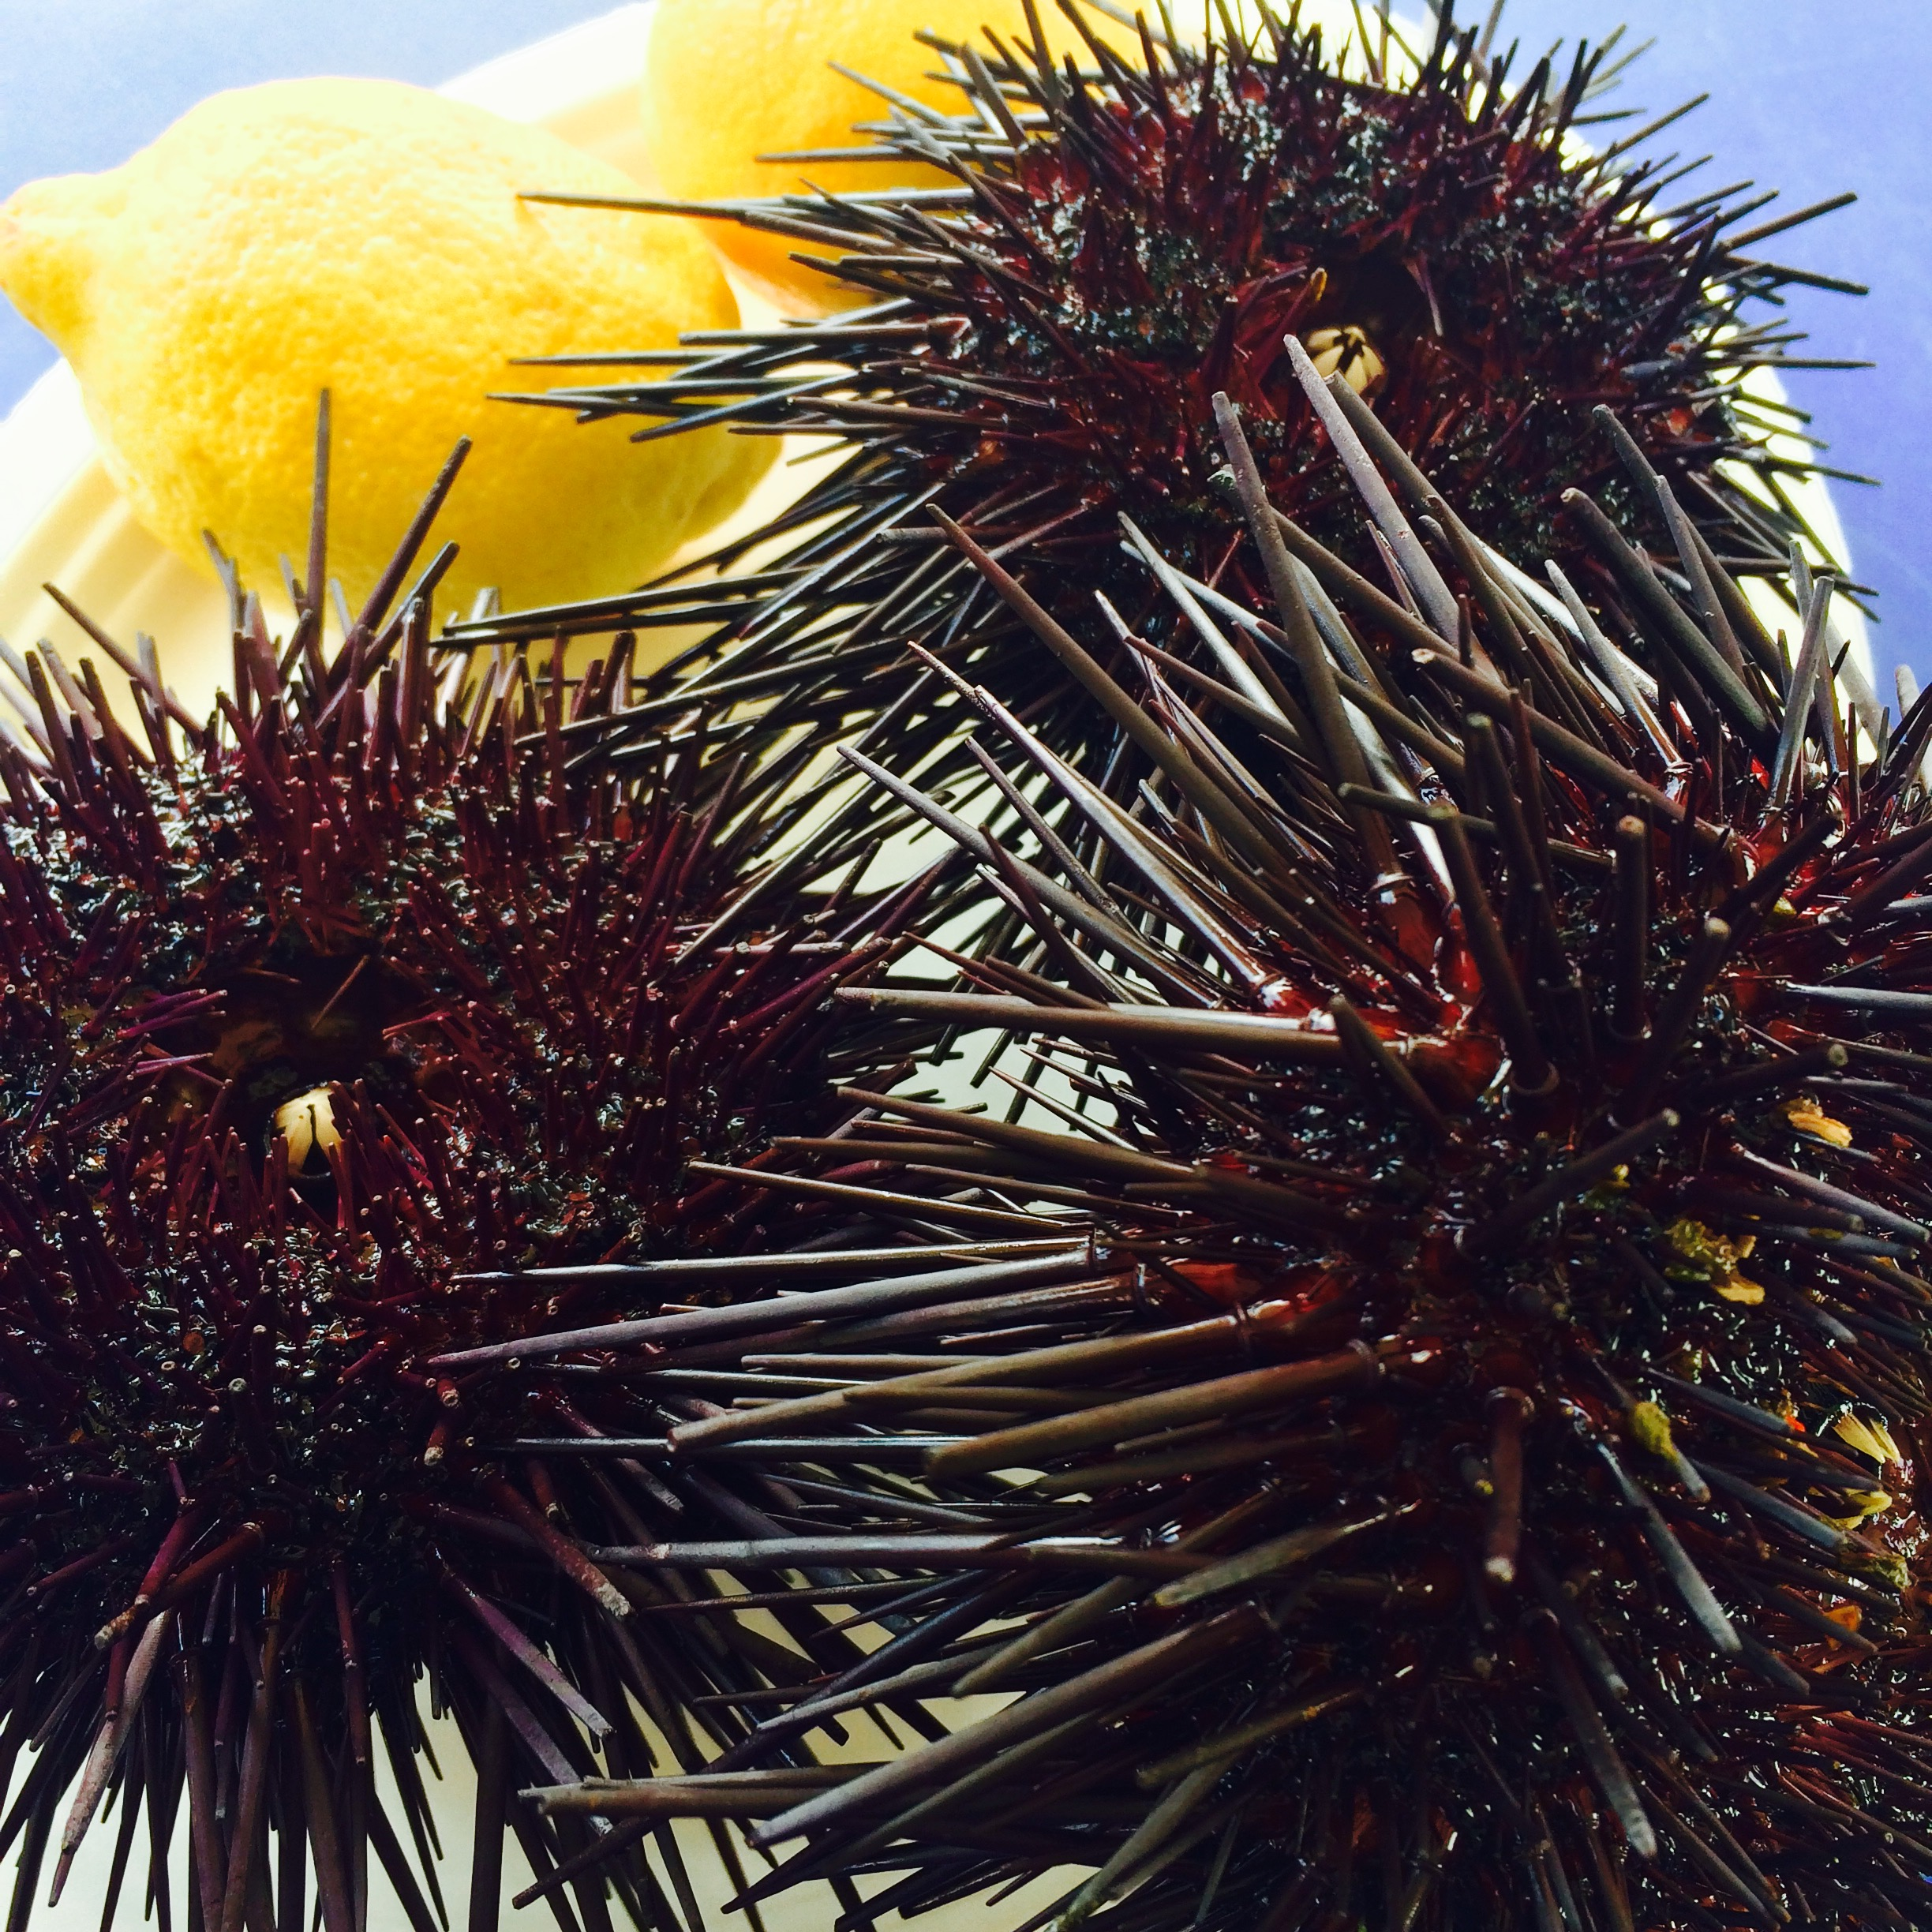 Santa Barbara Sea Urchin